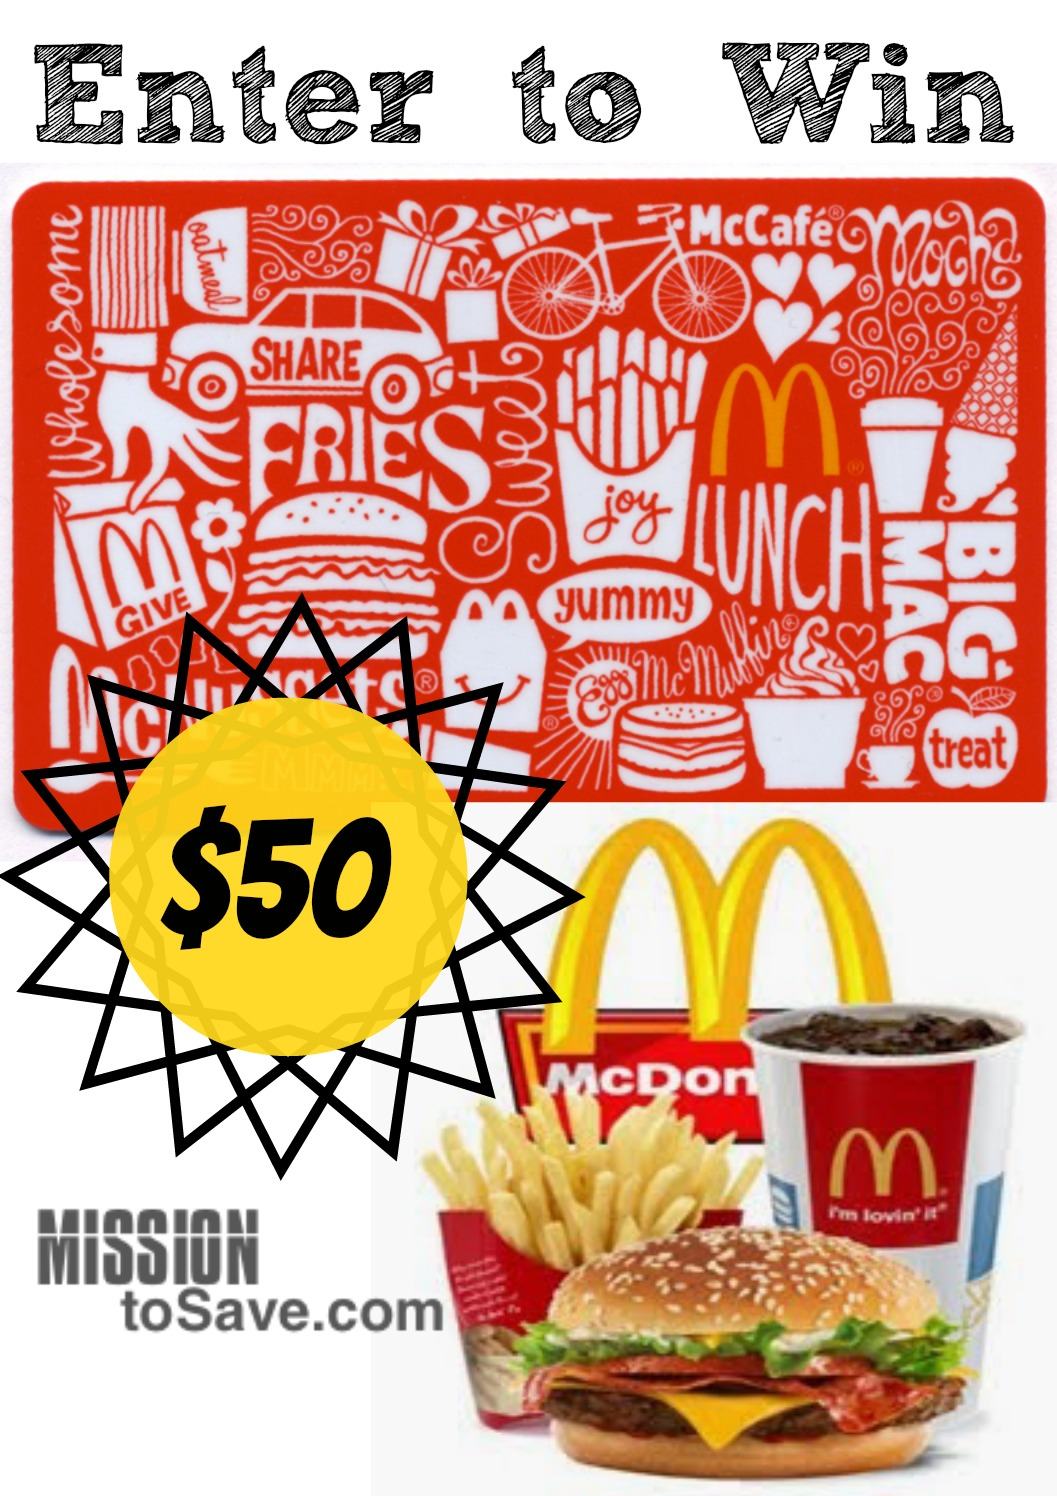 Mcdonalds gift card coupon book apple store student deals 2018 mcdonalds big mac coupon printable coupons online 1betcityfo Image collections